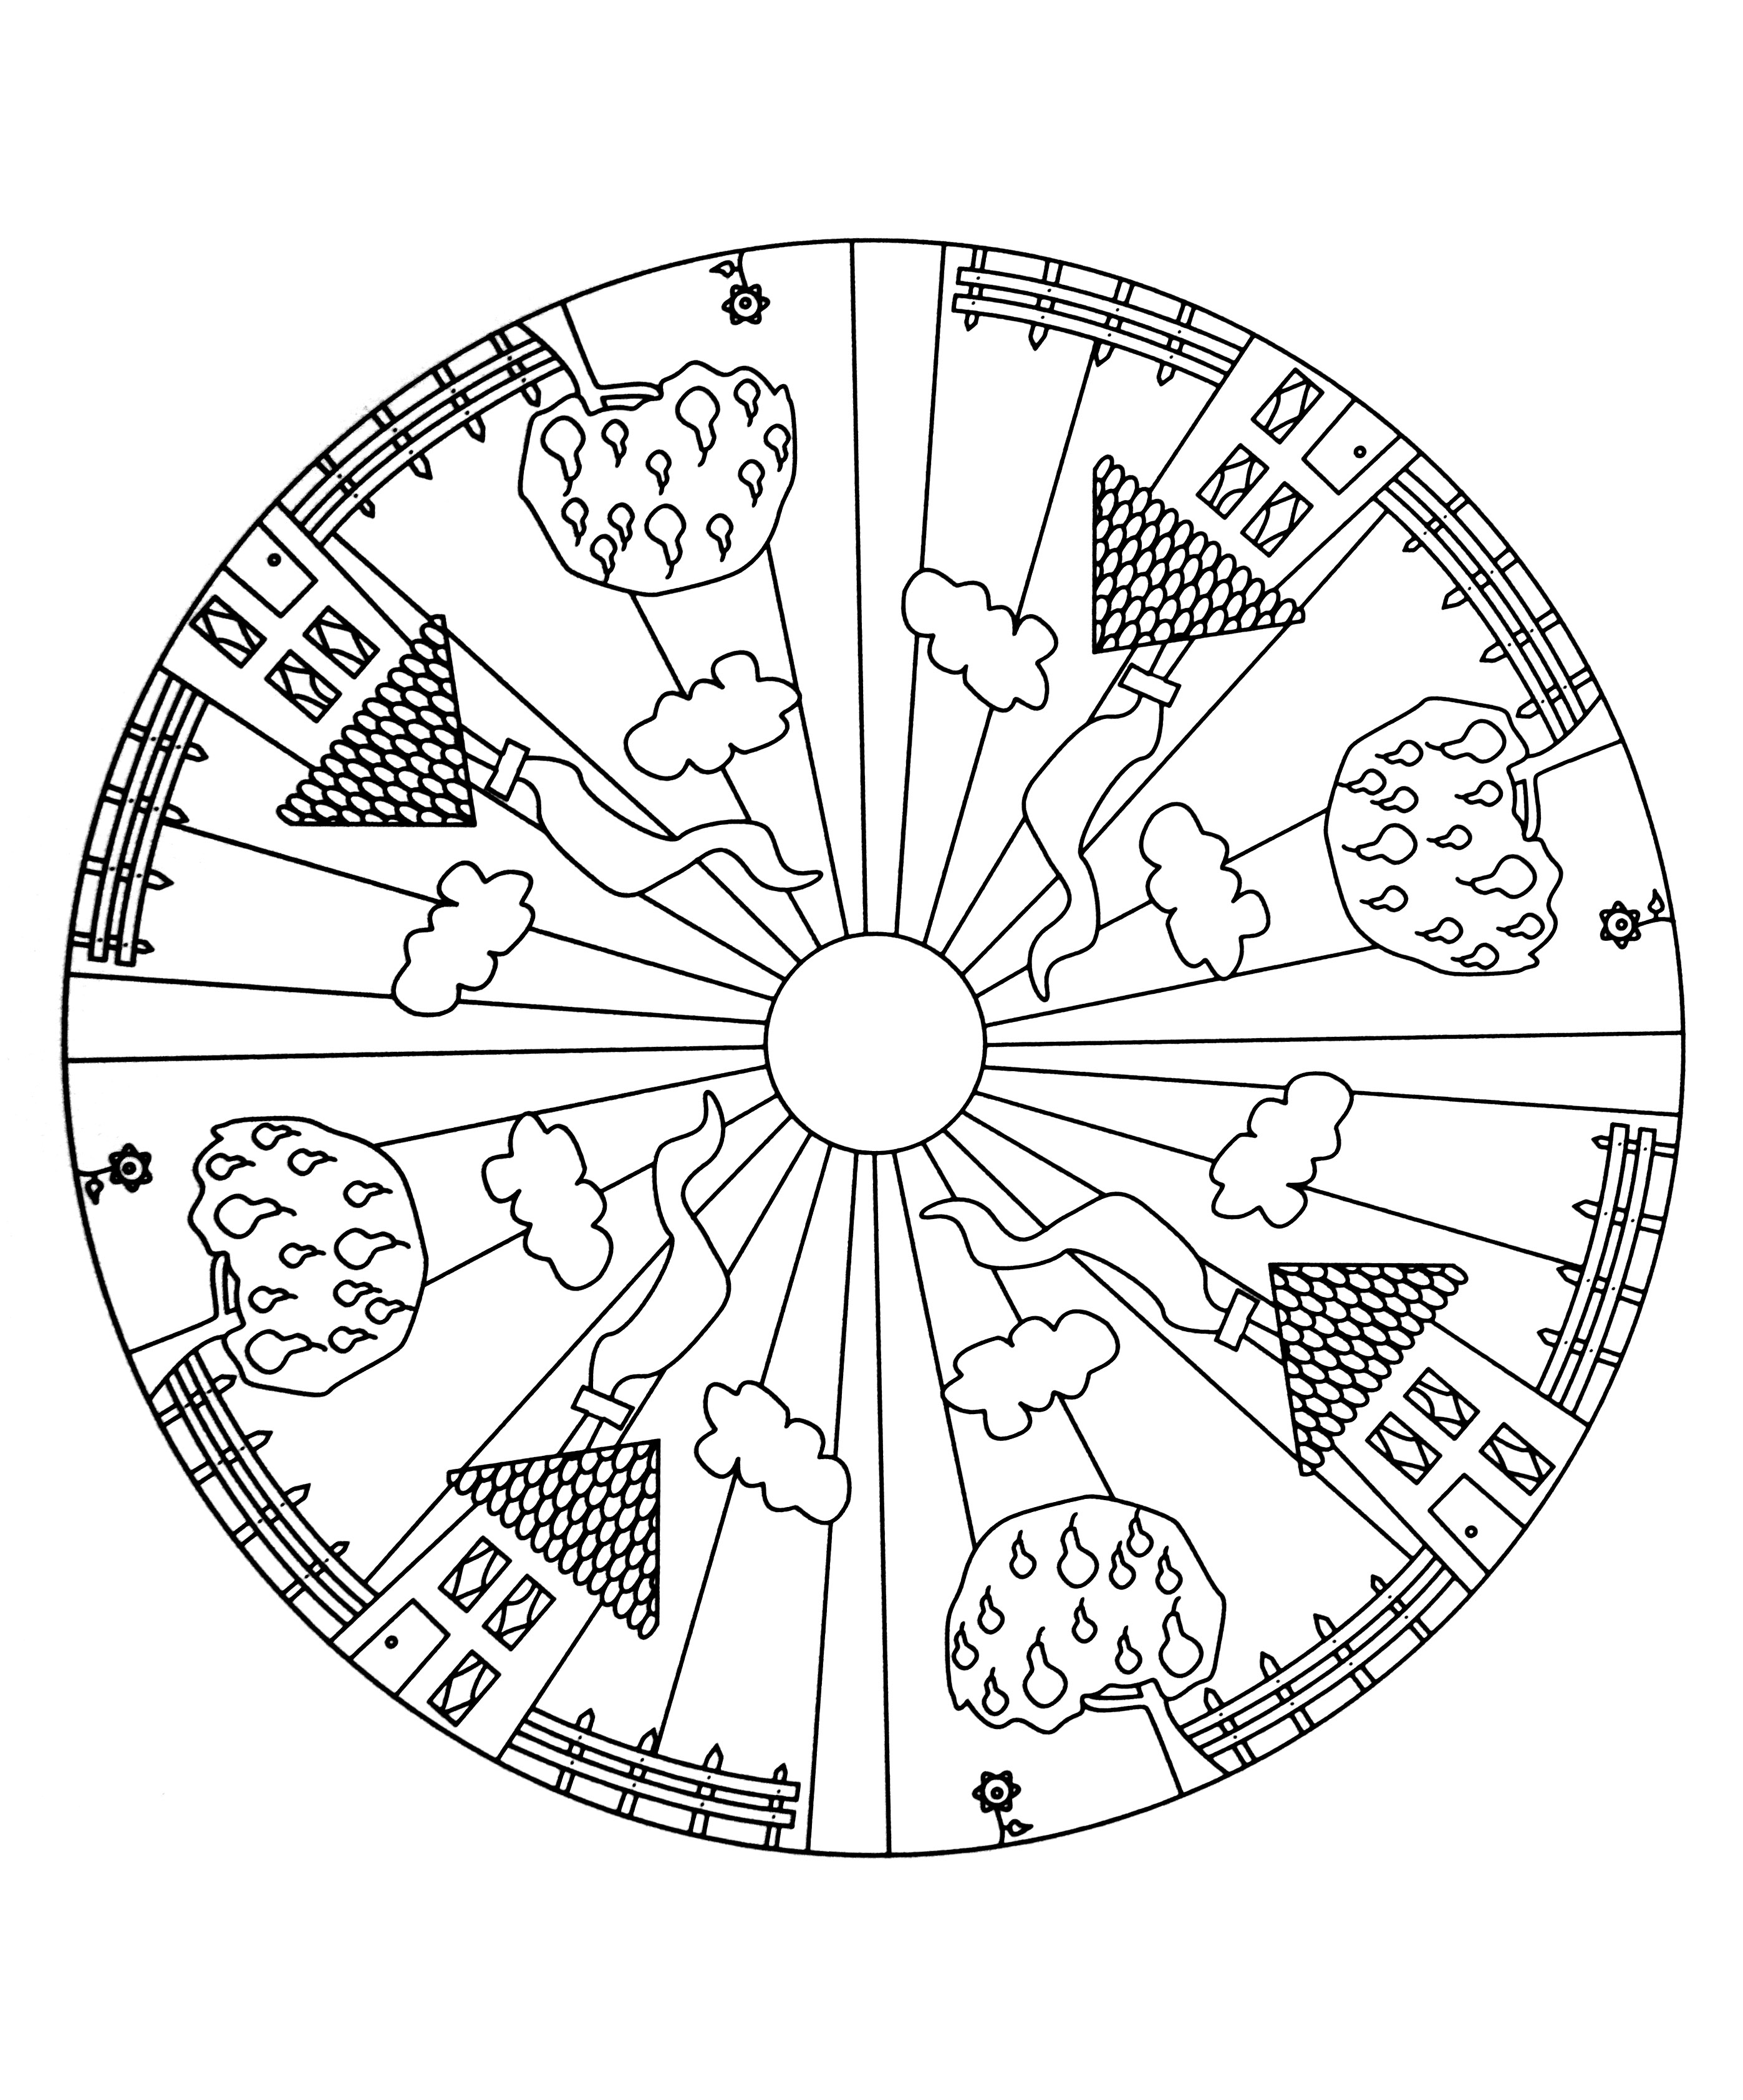 word mandala coloring pages coloring page for adults with mandala and warrior word word mandala pages coloring